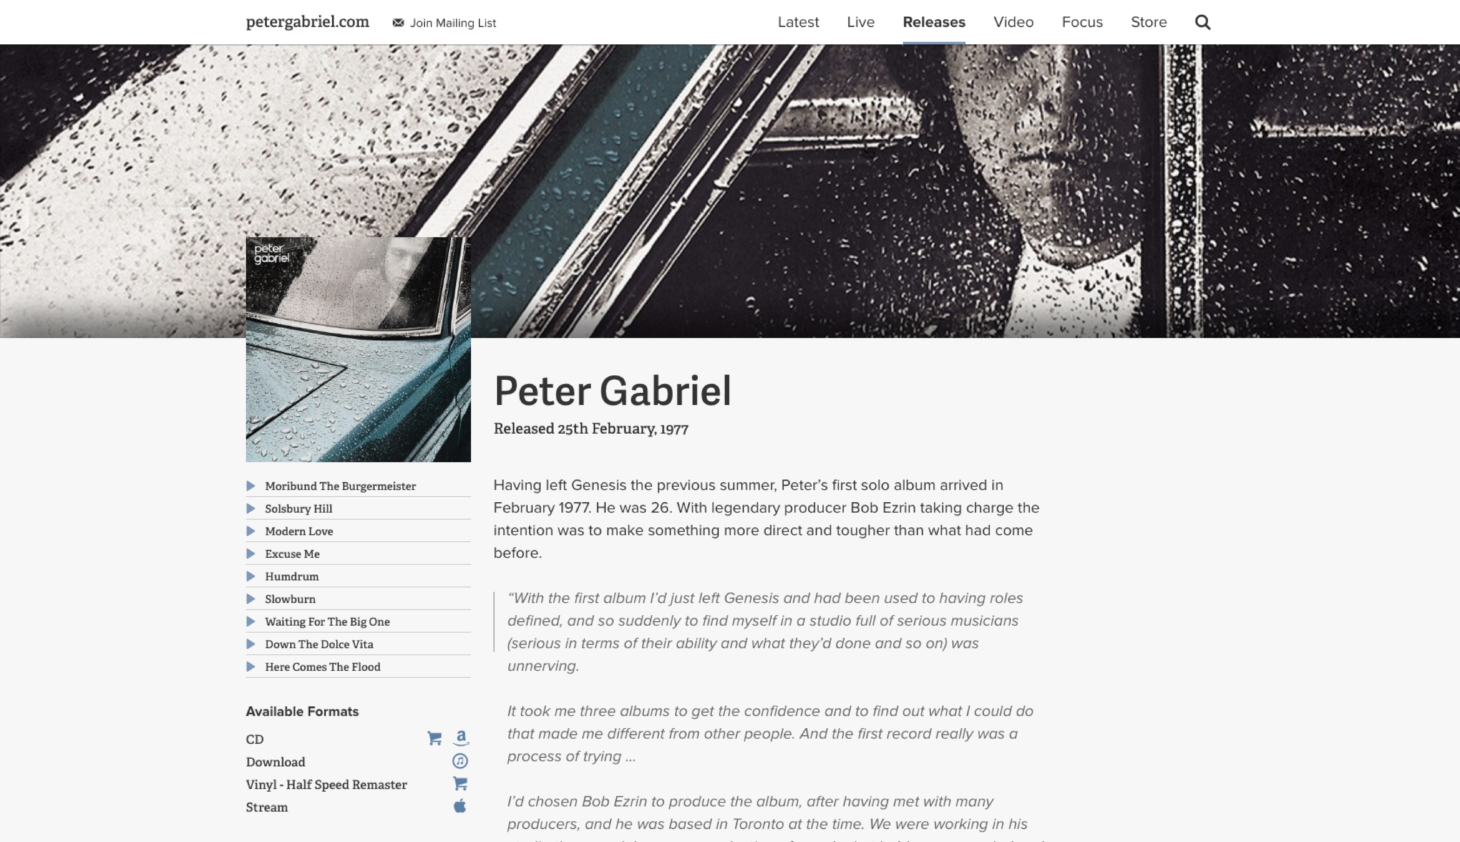 Website design for Peter Gabriel's official site